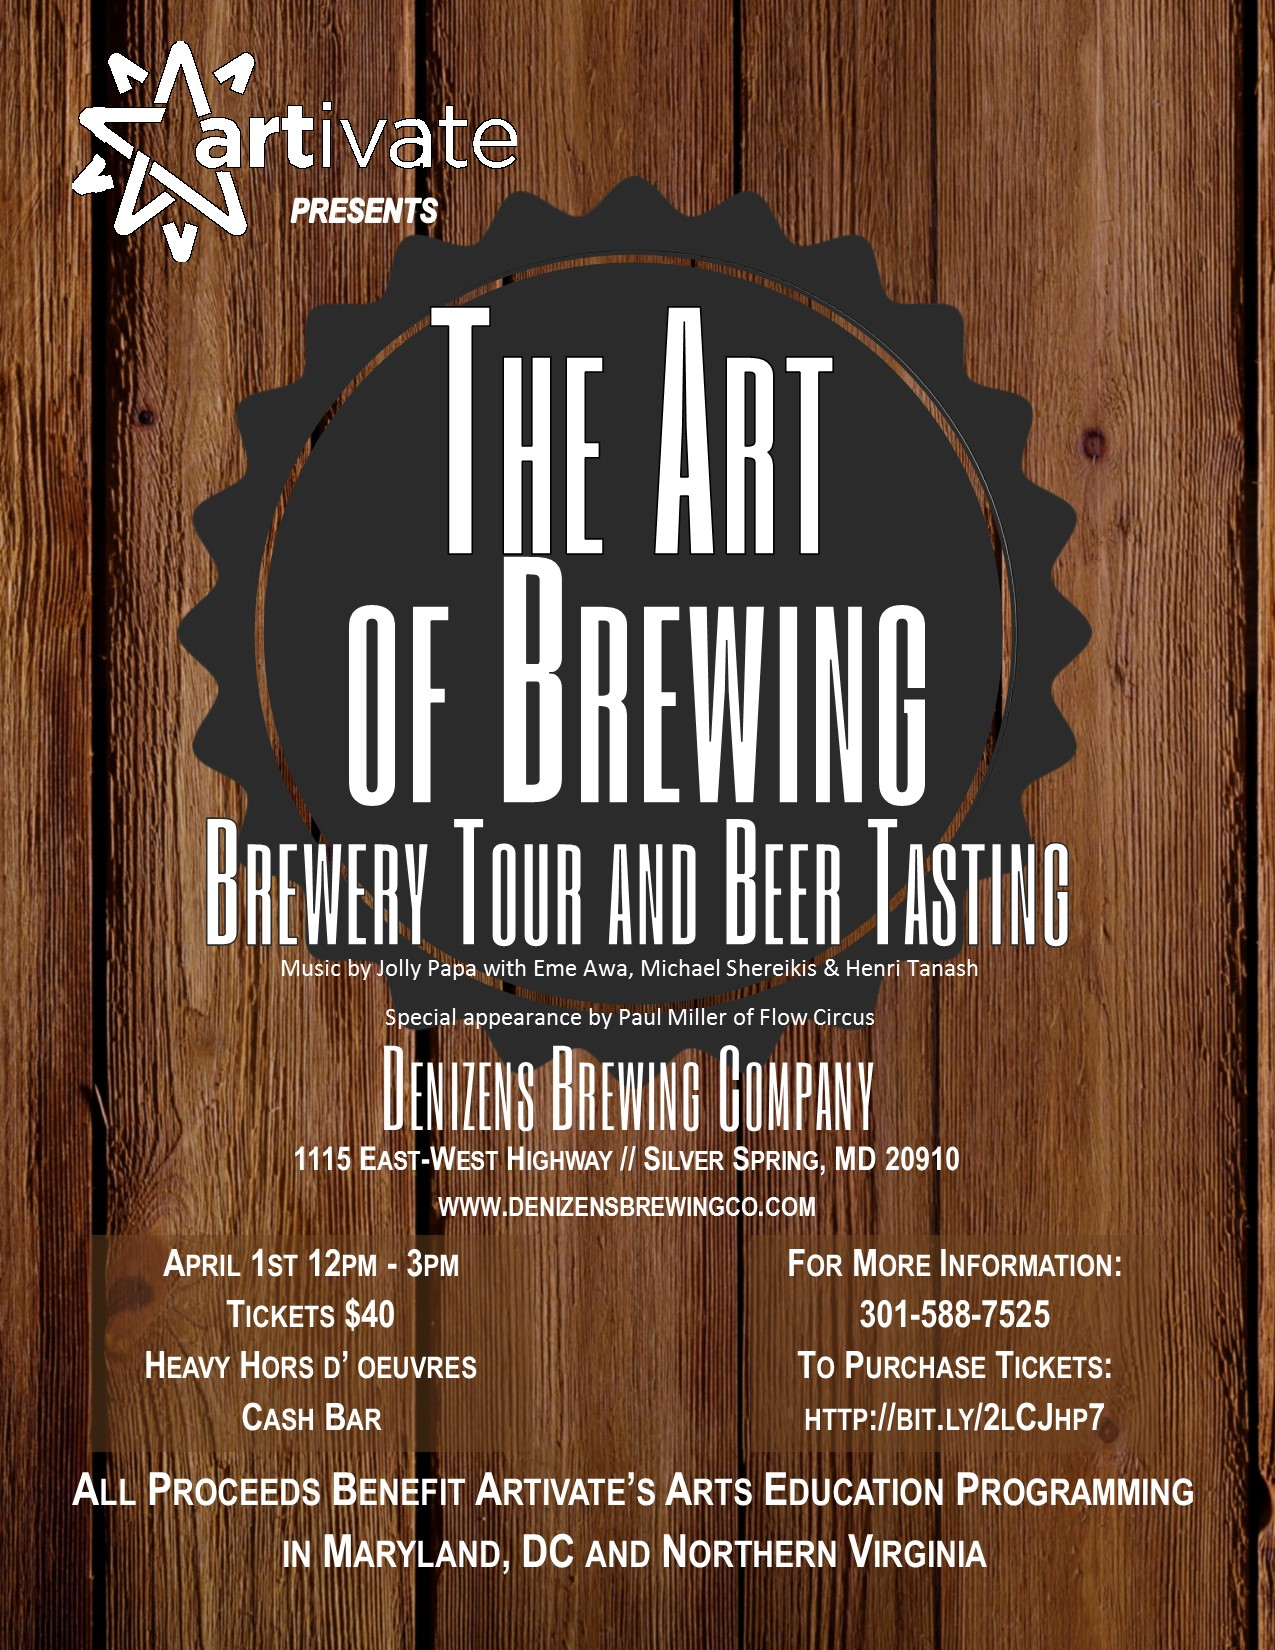 Artivate's The Art Of Brewing